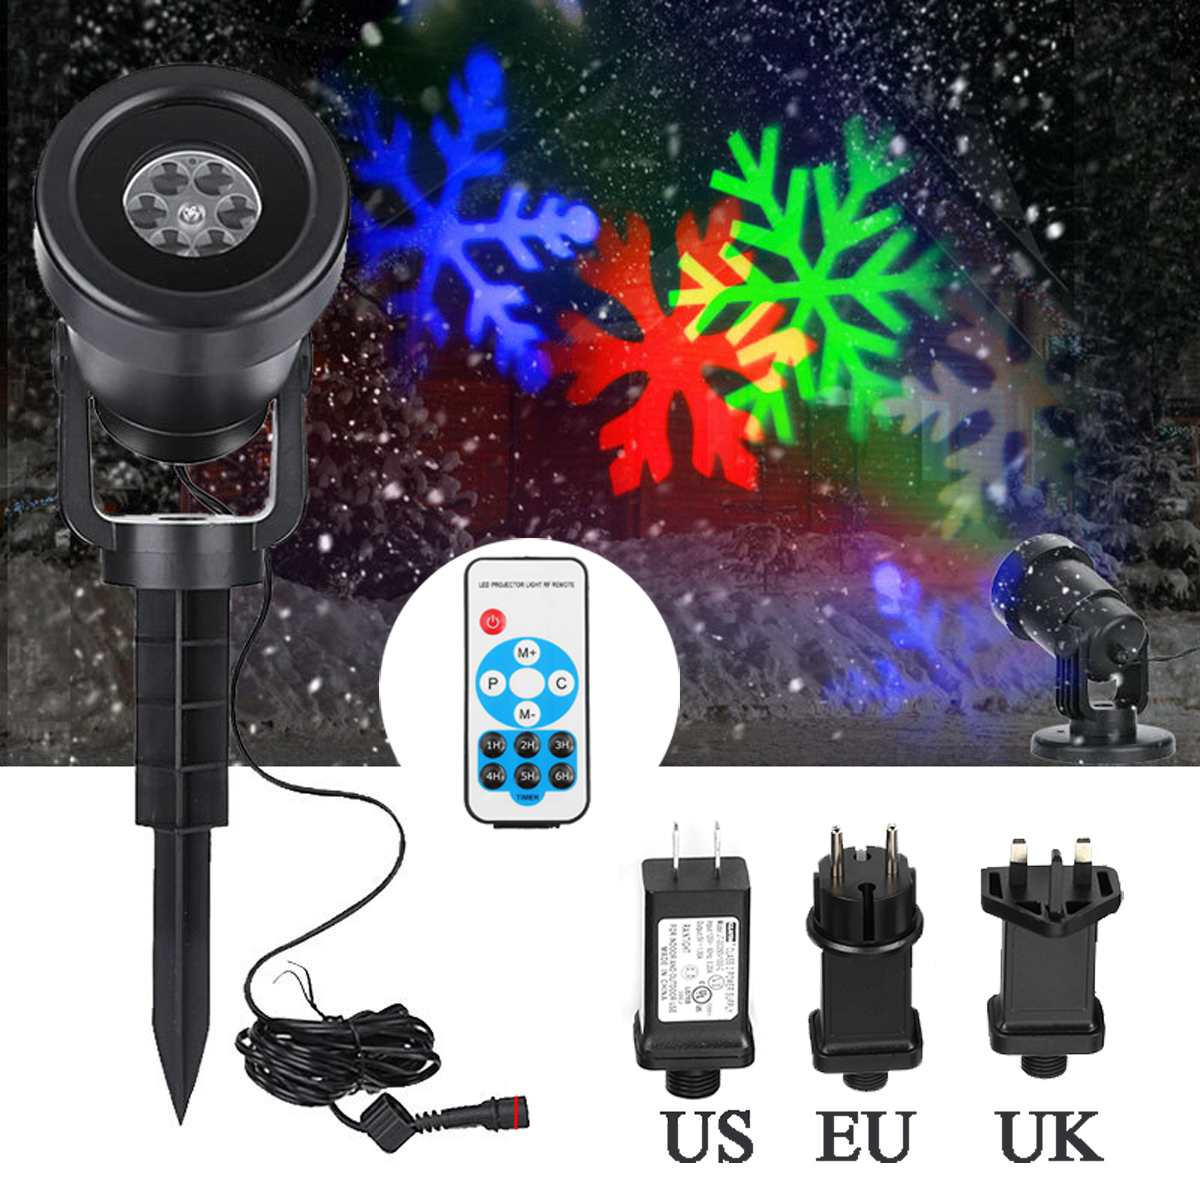 12 Patterns Outdoor LED RGB Laser Stage Light Garden Landscape Projector Moving Laser Stage Light for DJ Disco Christmas Party12 Patterns Outdoor LED RGB Laser Stage Light Garden Landscape Projector Moving Laser Stage Light for DJ Disco Christmas Party